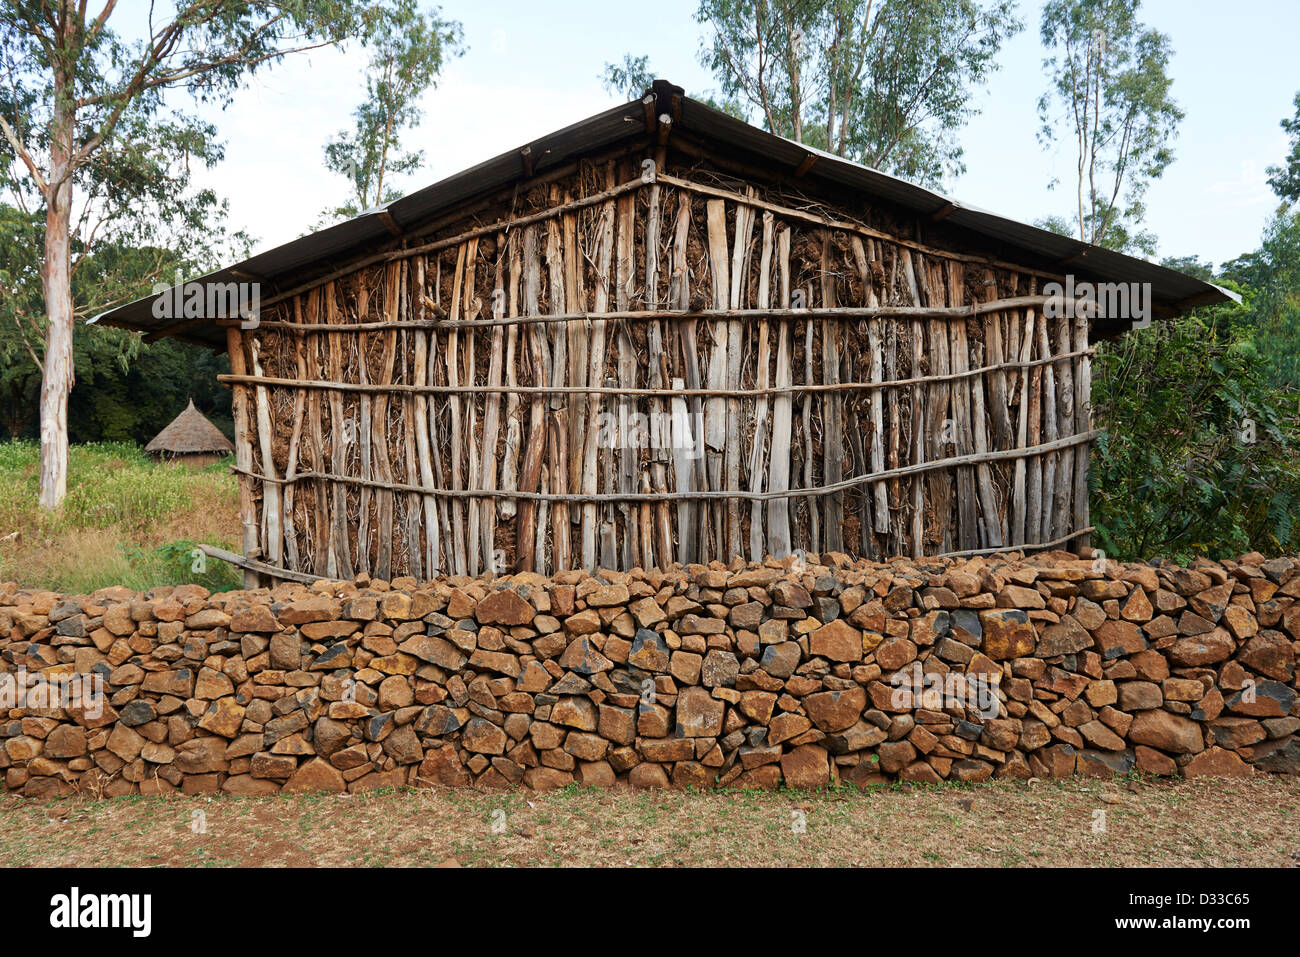 A traditional Ethiopian home constructed of local resources such as wood and timber - Stock Image